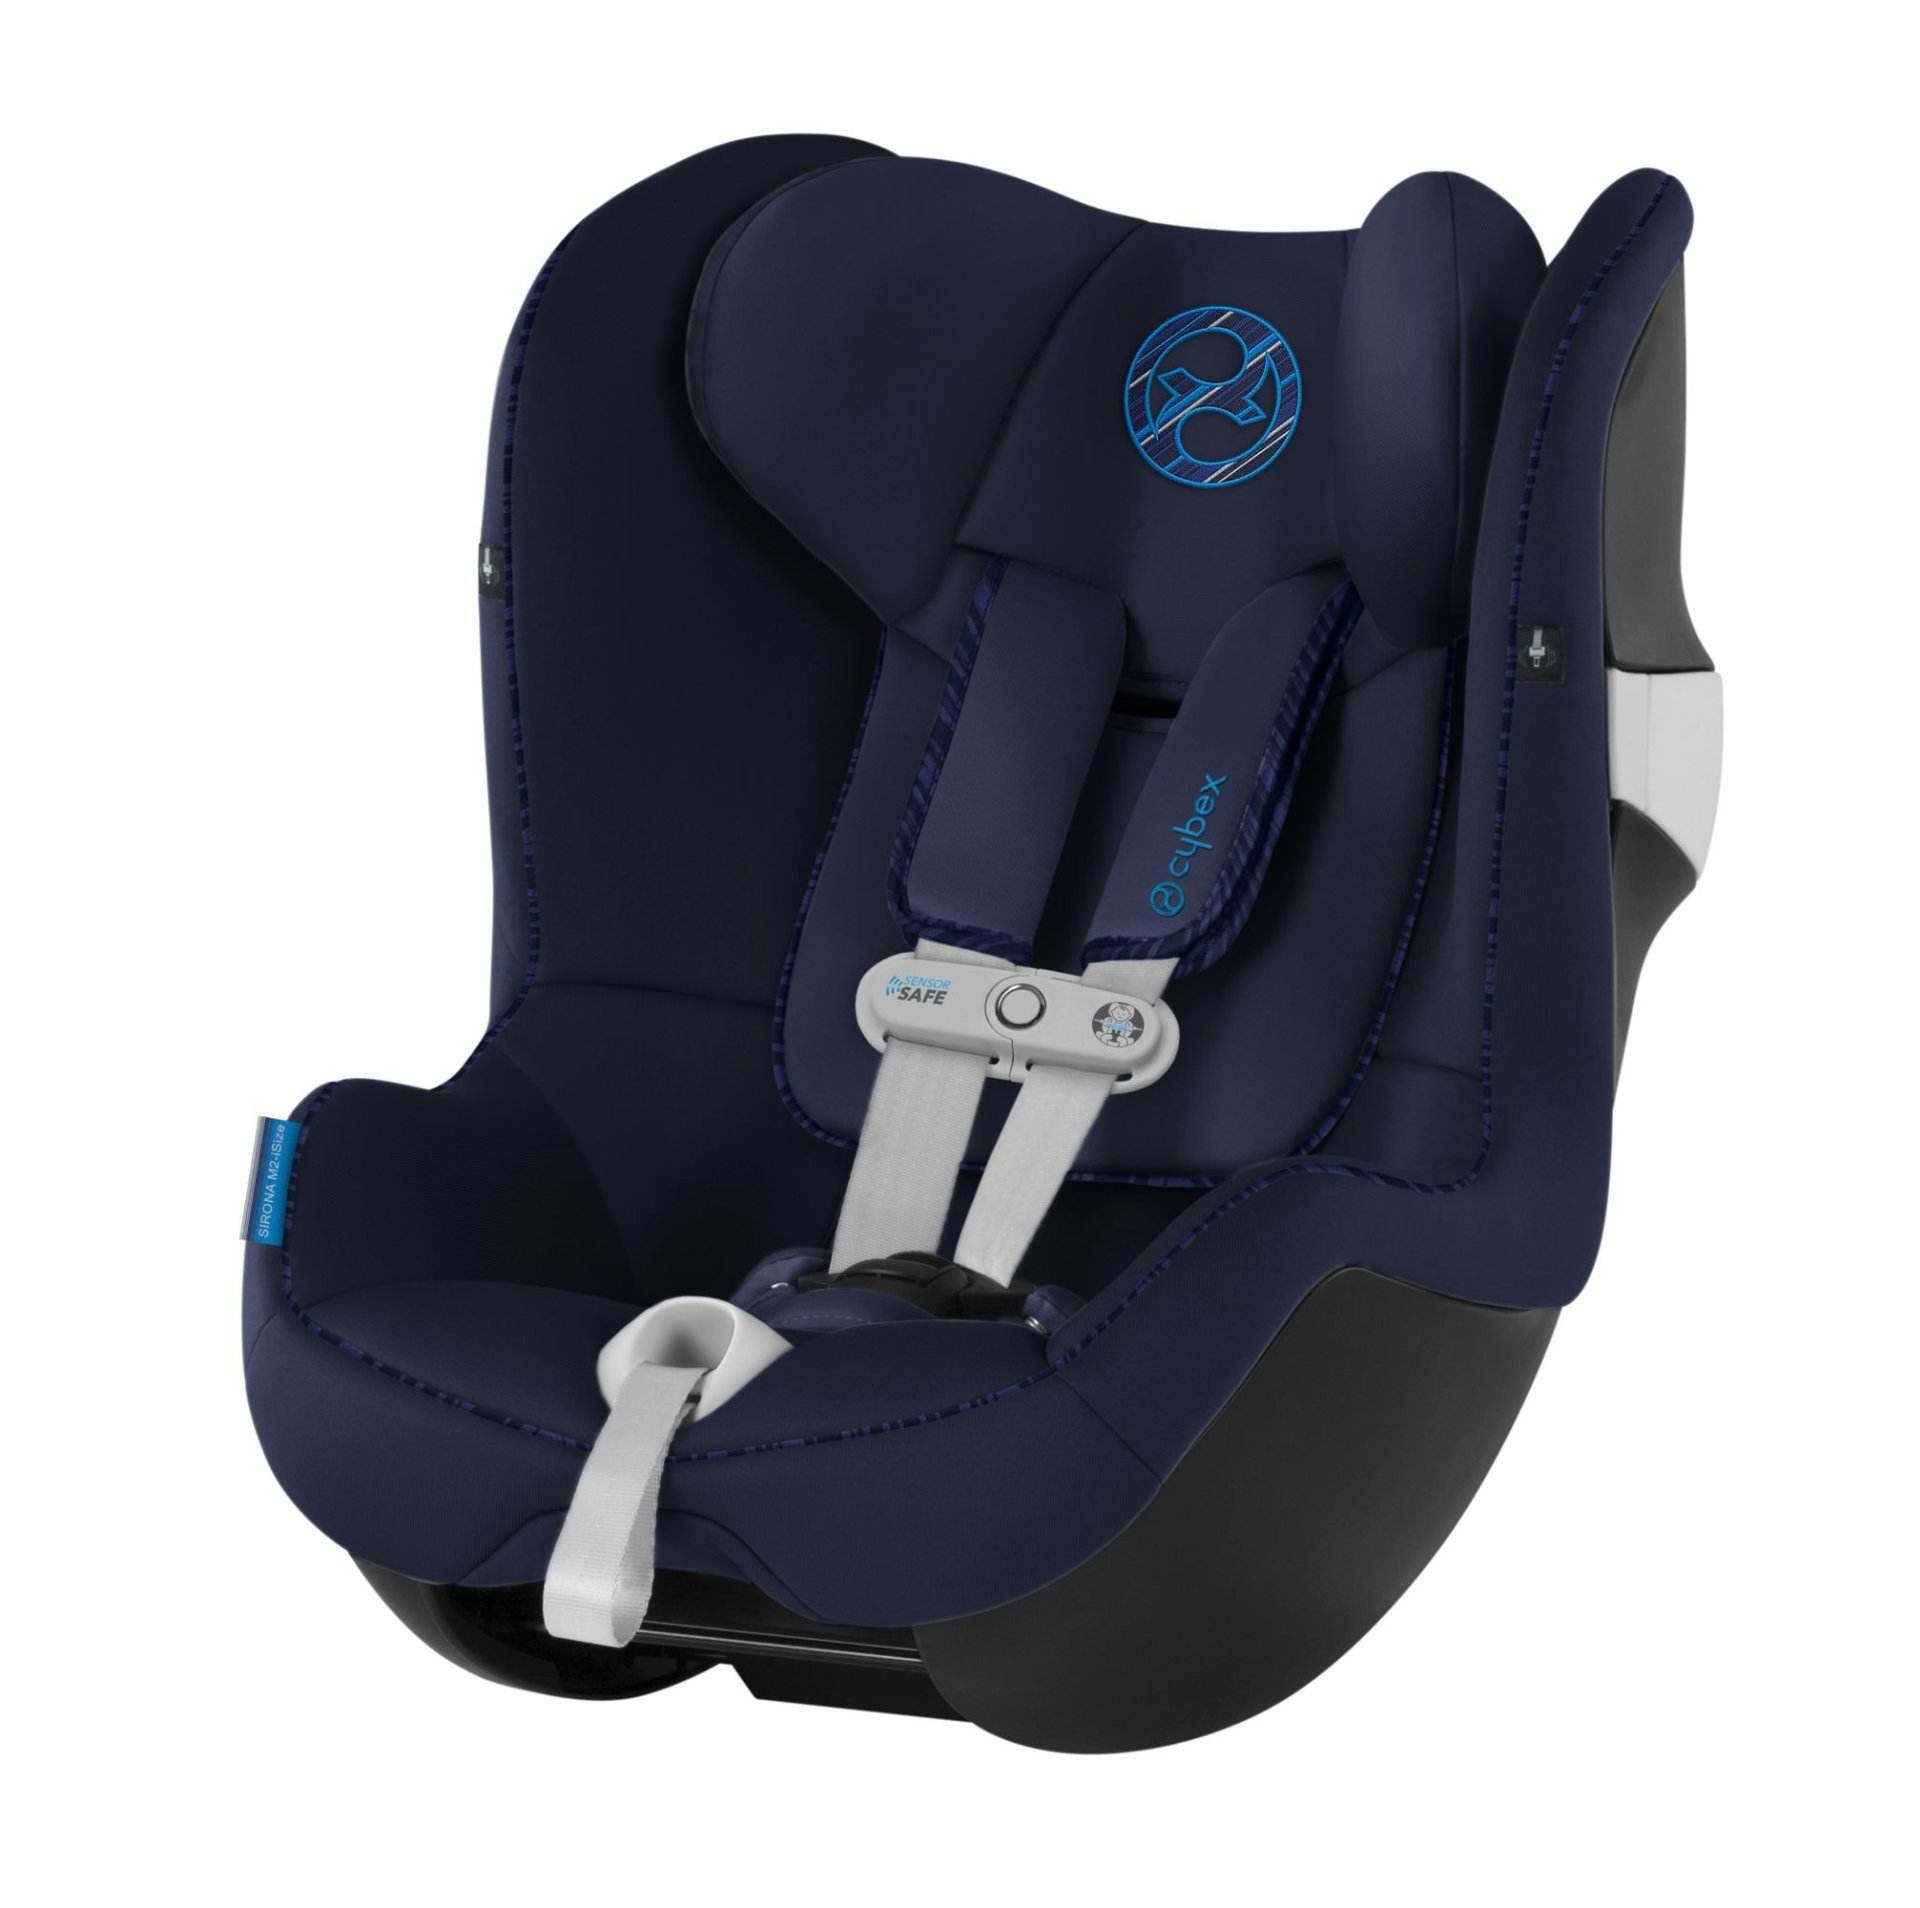 cybex child car seat sirona m2 i size including sensorsafe 2019 indigo blue navy blue buy at. Black Bedroom Furniture Sets. Home Design Ideas